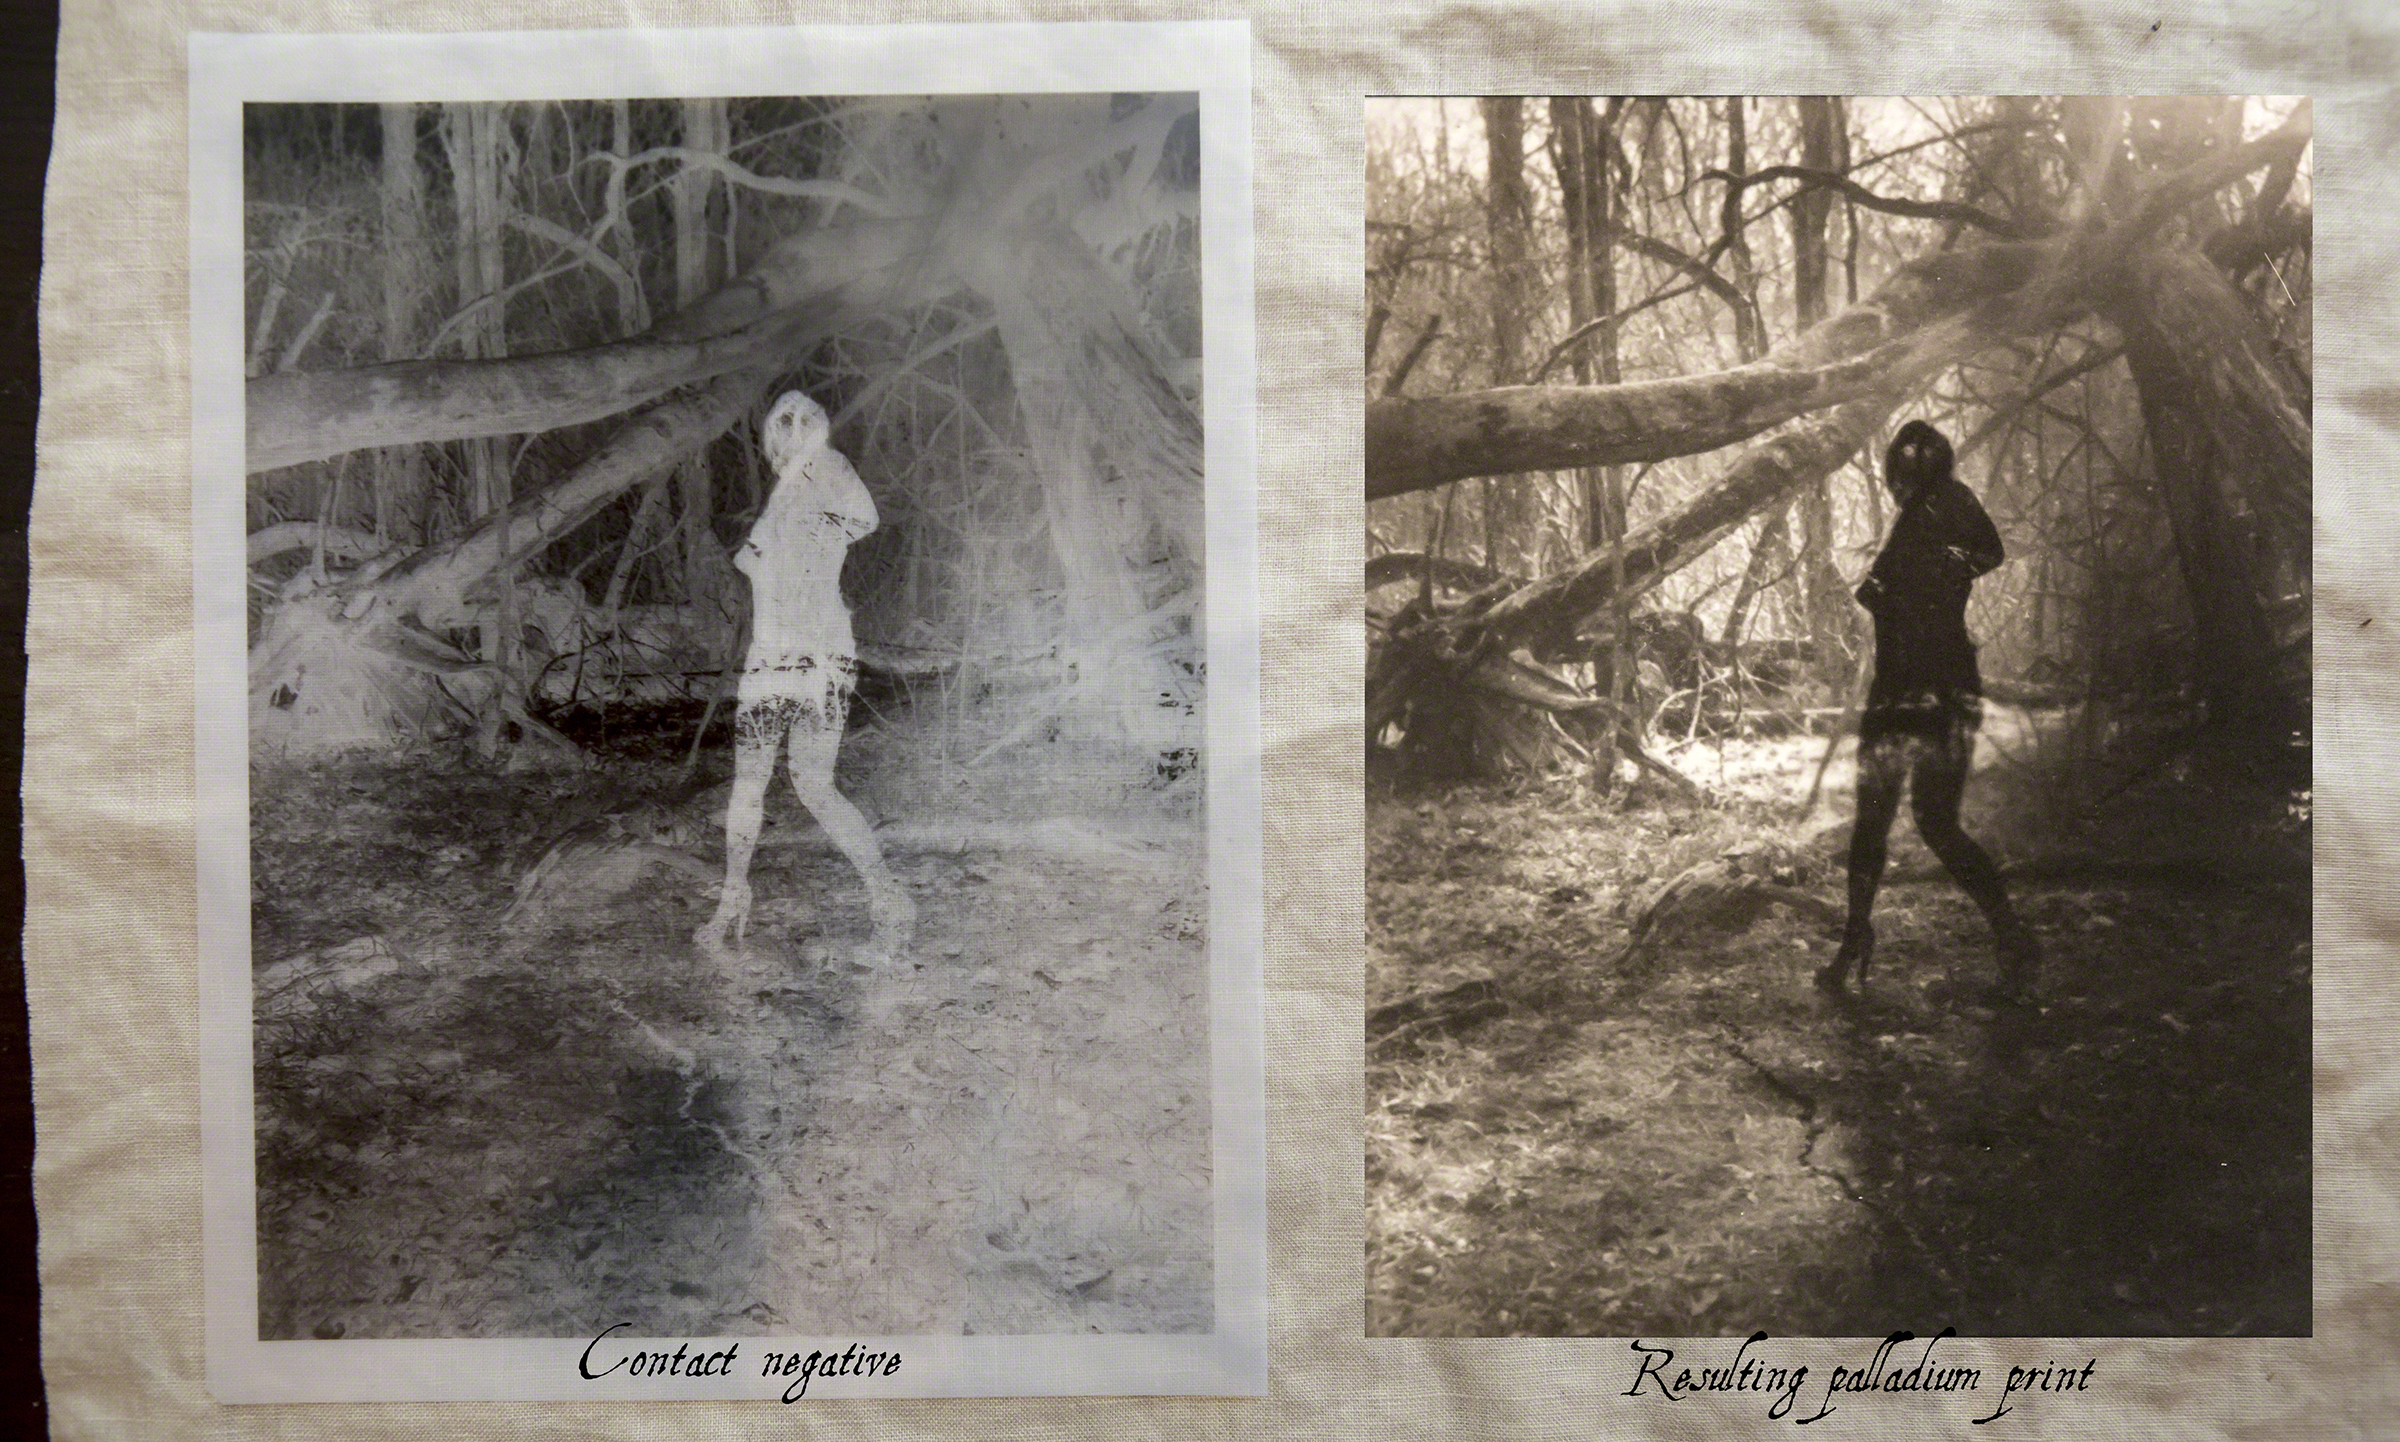 The final resulting Palladium print next to the contact print